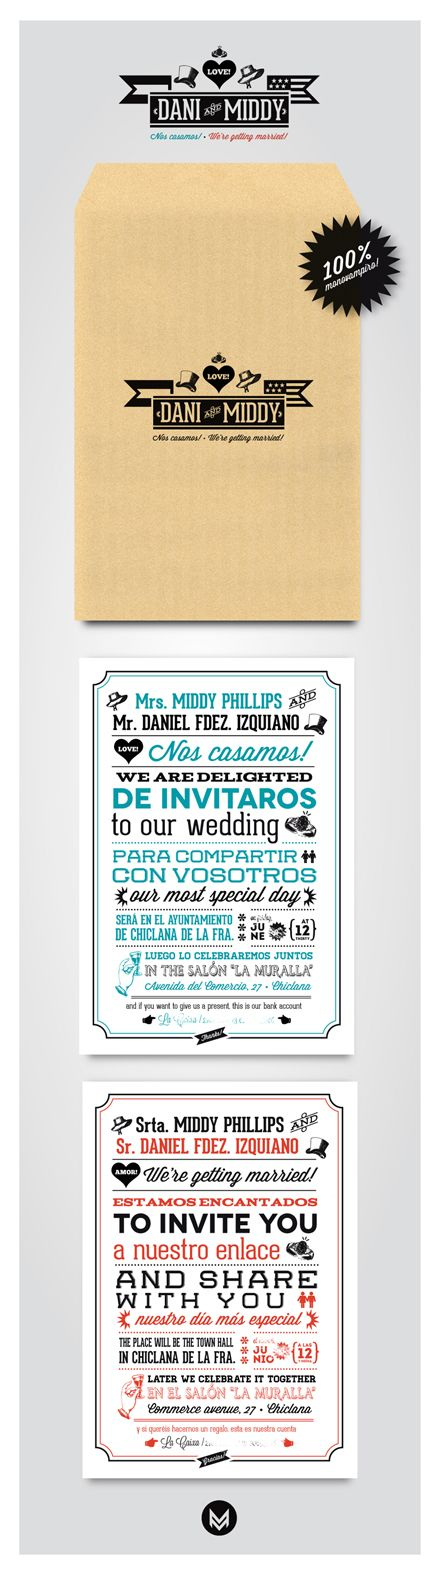 Hand Cancelling Wedding Invitations is perfect invitations example